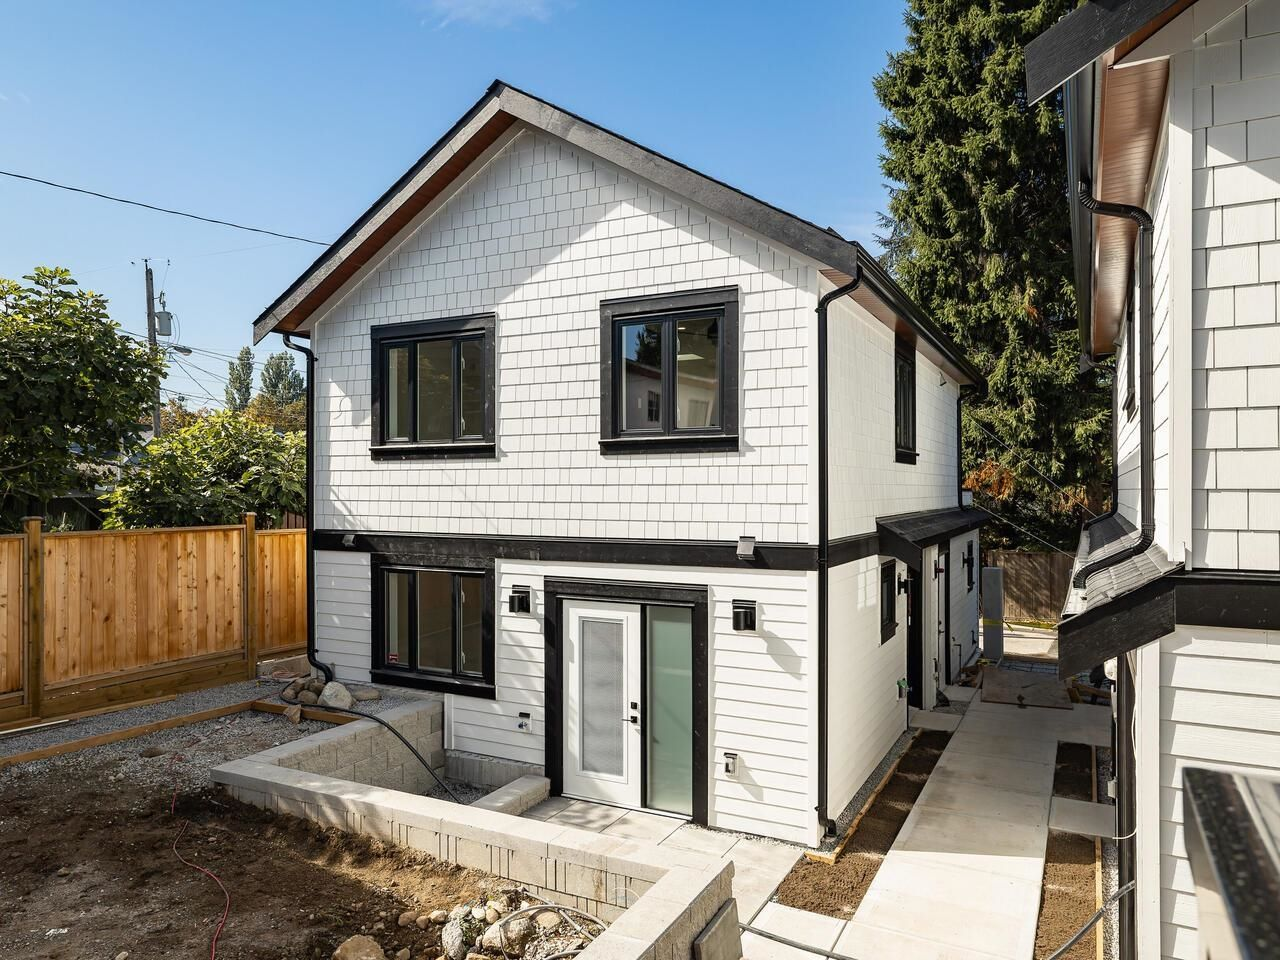 Main Photo: 5449 KILLARNEY in Vancouver: Collingwood VE House for sale (Vancouver East)  : MLS®# R2625114